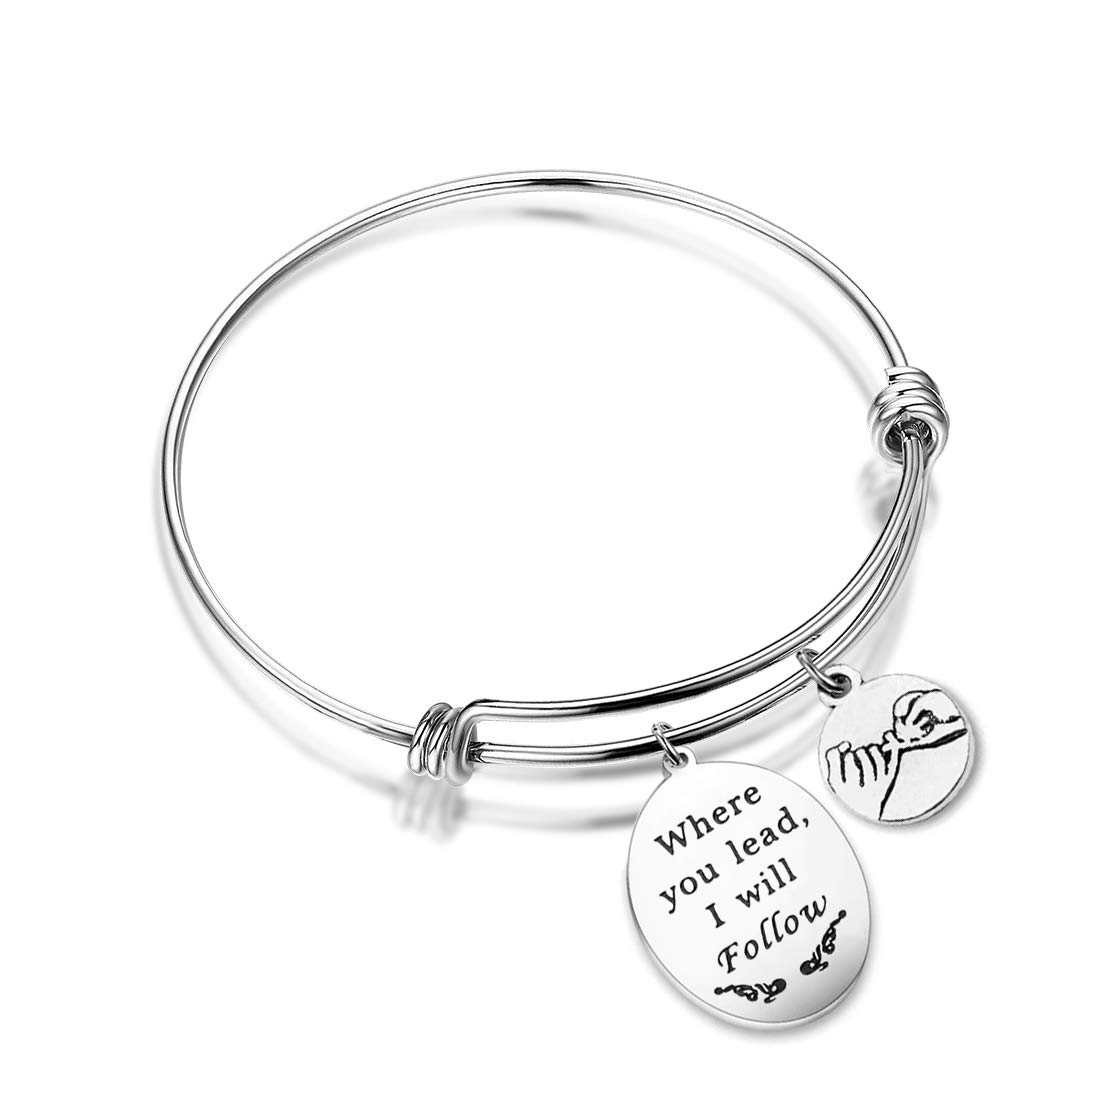 HOLLP Gilmore Girls Mother Daughter Bracelet Where You Lead I Will Follow Friendship Jewelry (Bracelet-S)